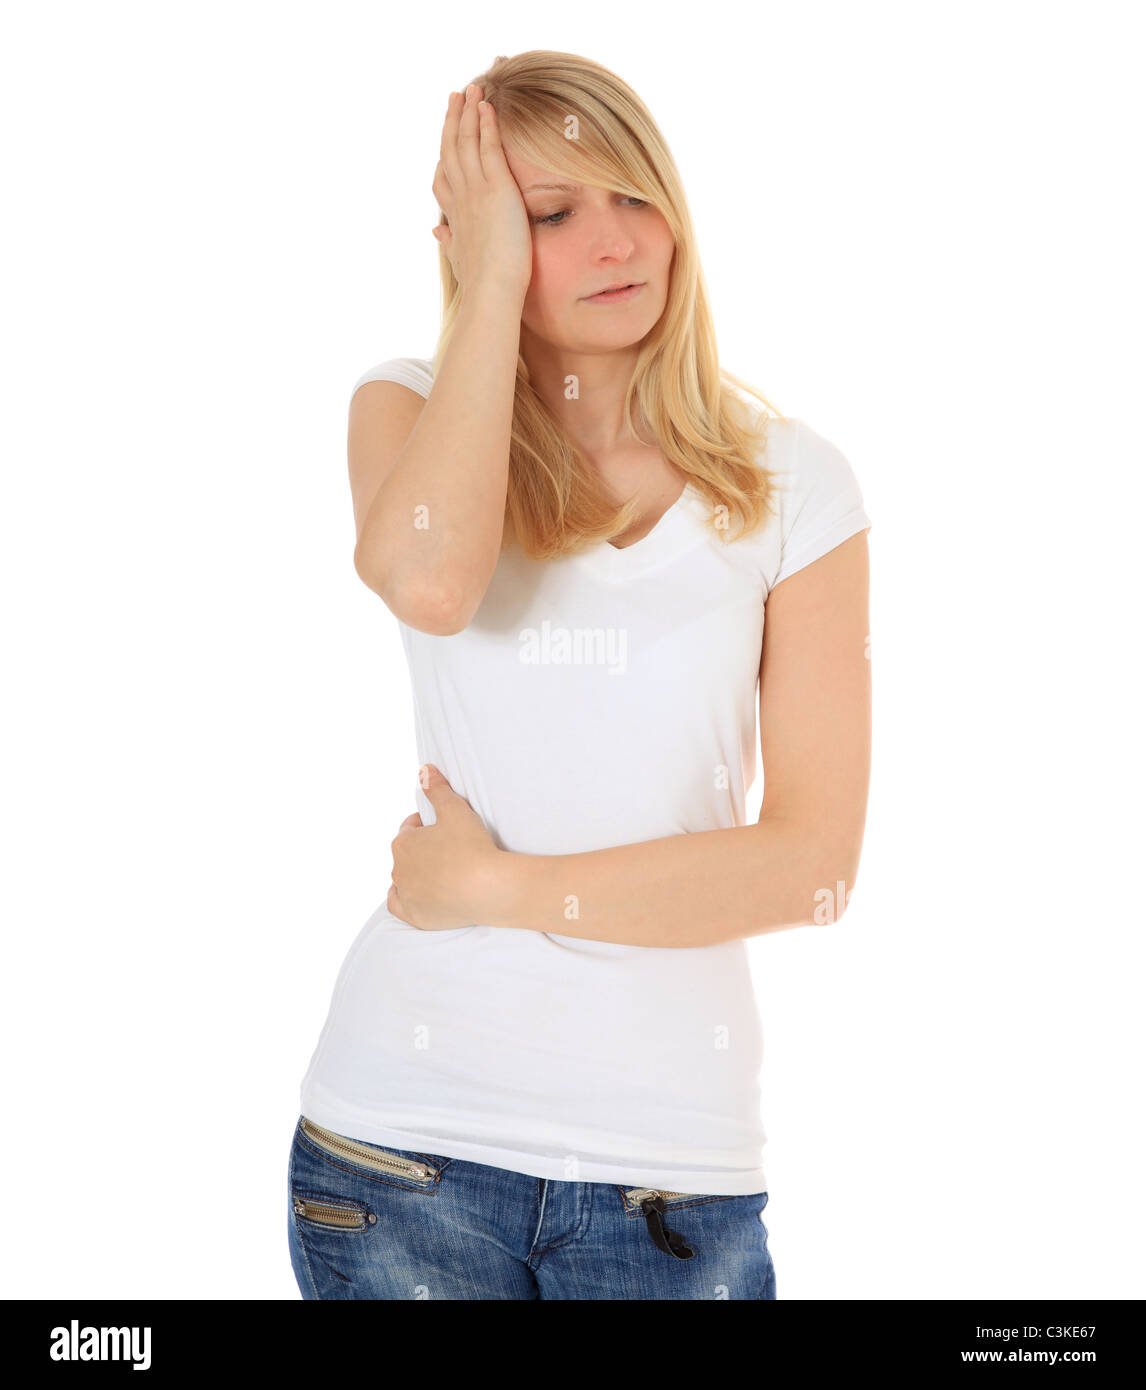 Attractive young woman feels unwell. All on white background. - Stock Image